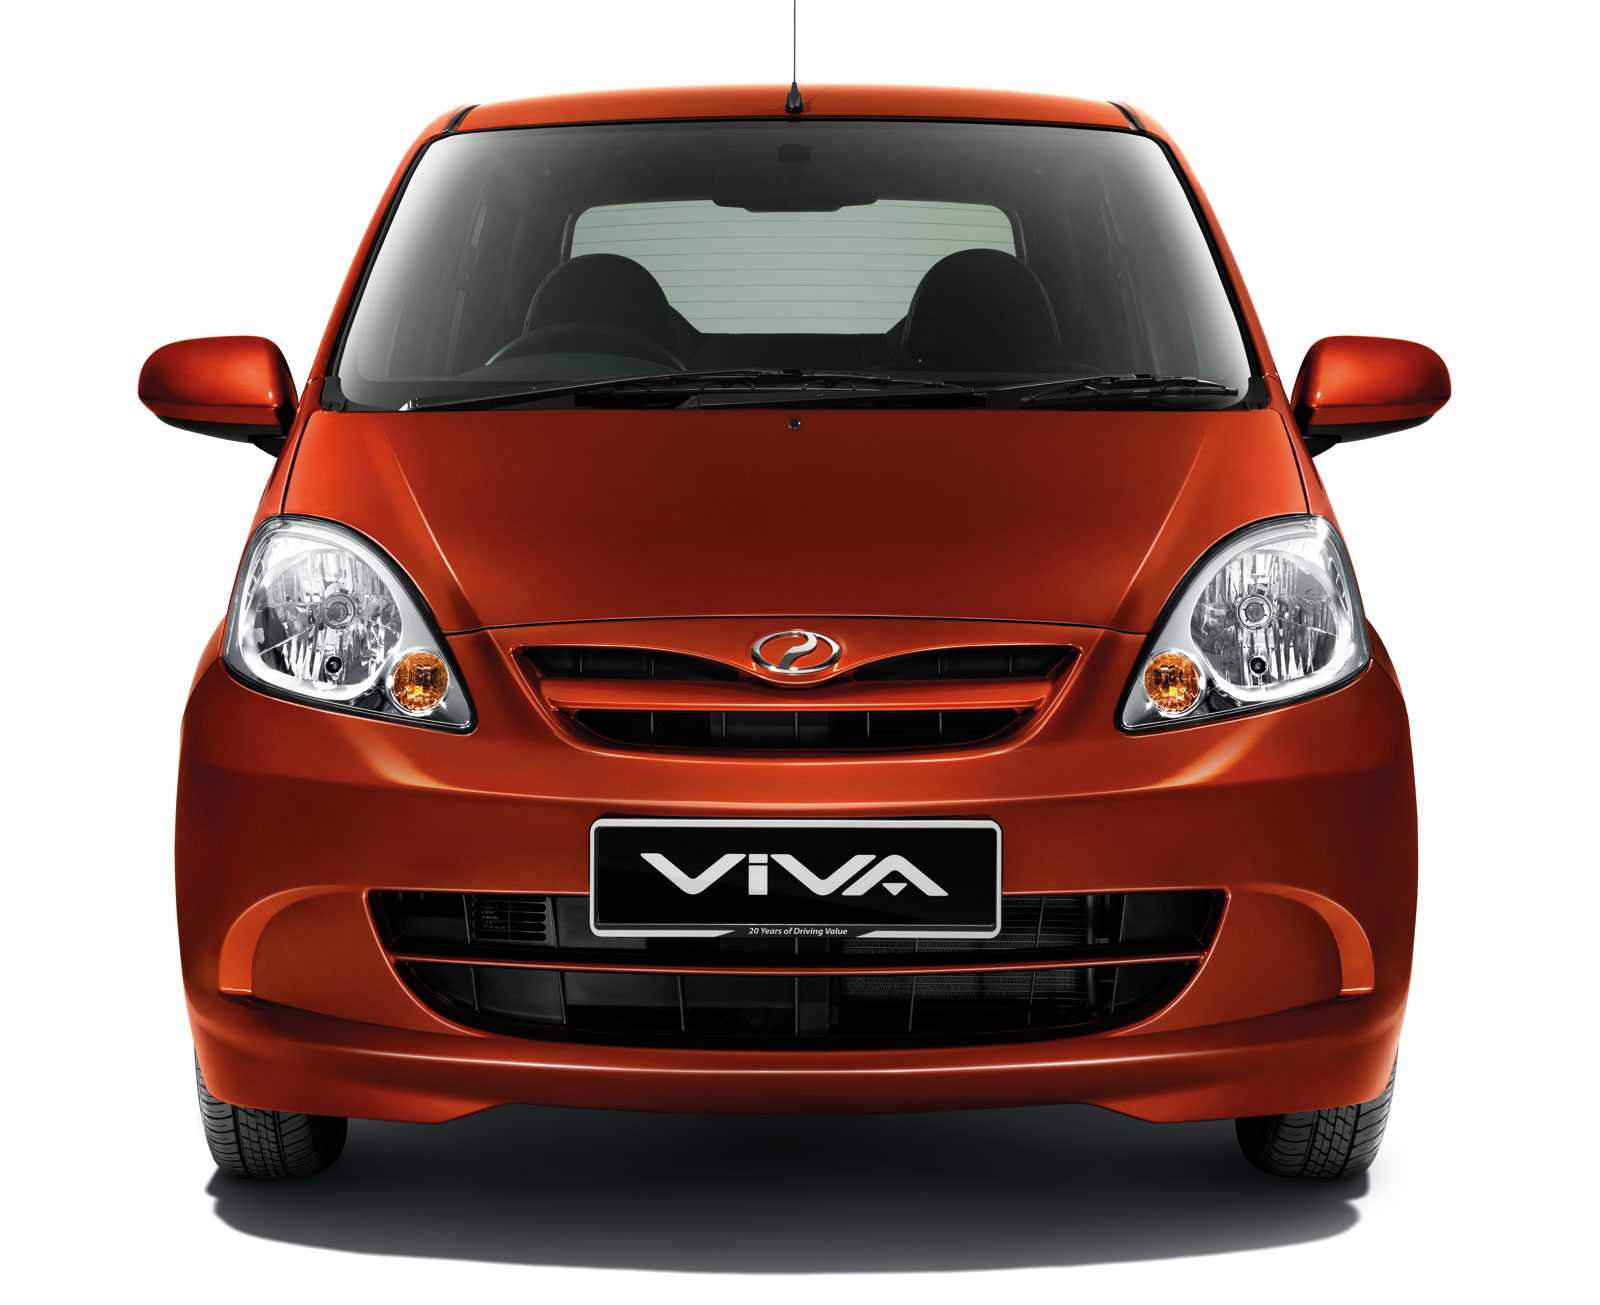 Perodua Viva - prices reduced from RM3,000-RM5,300